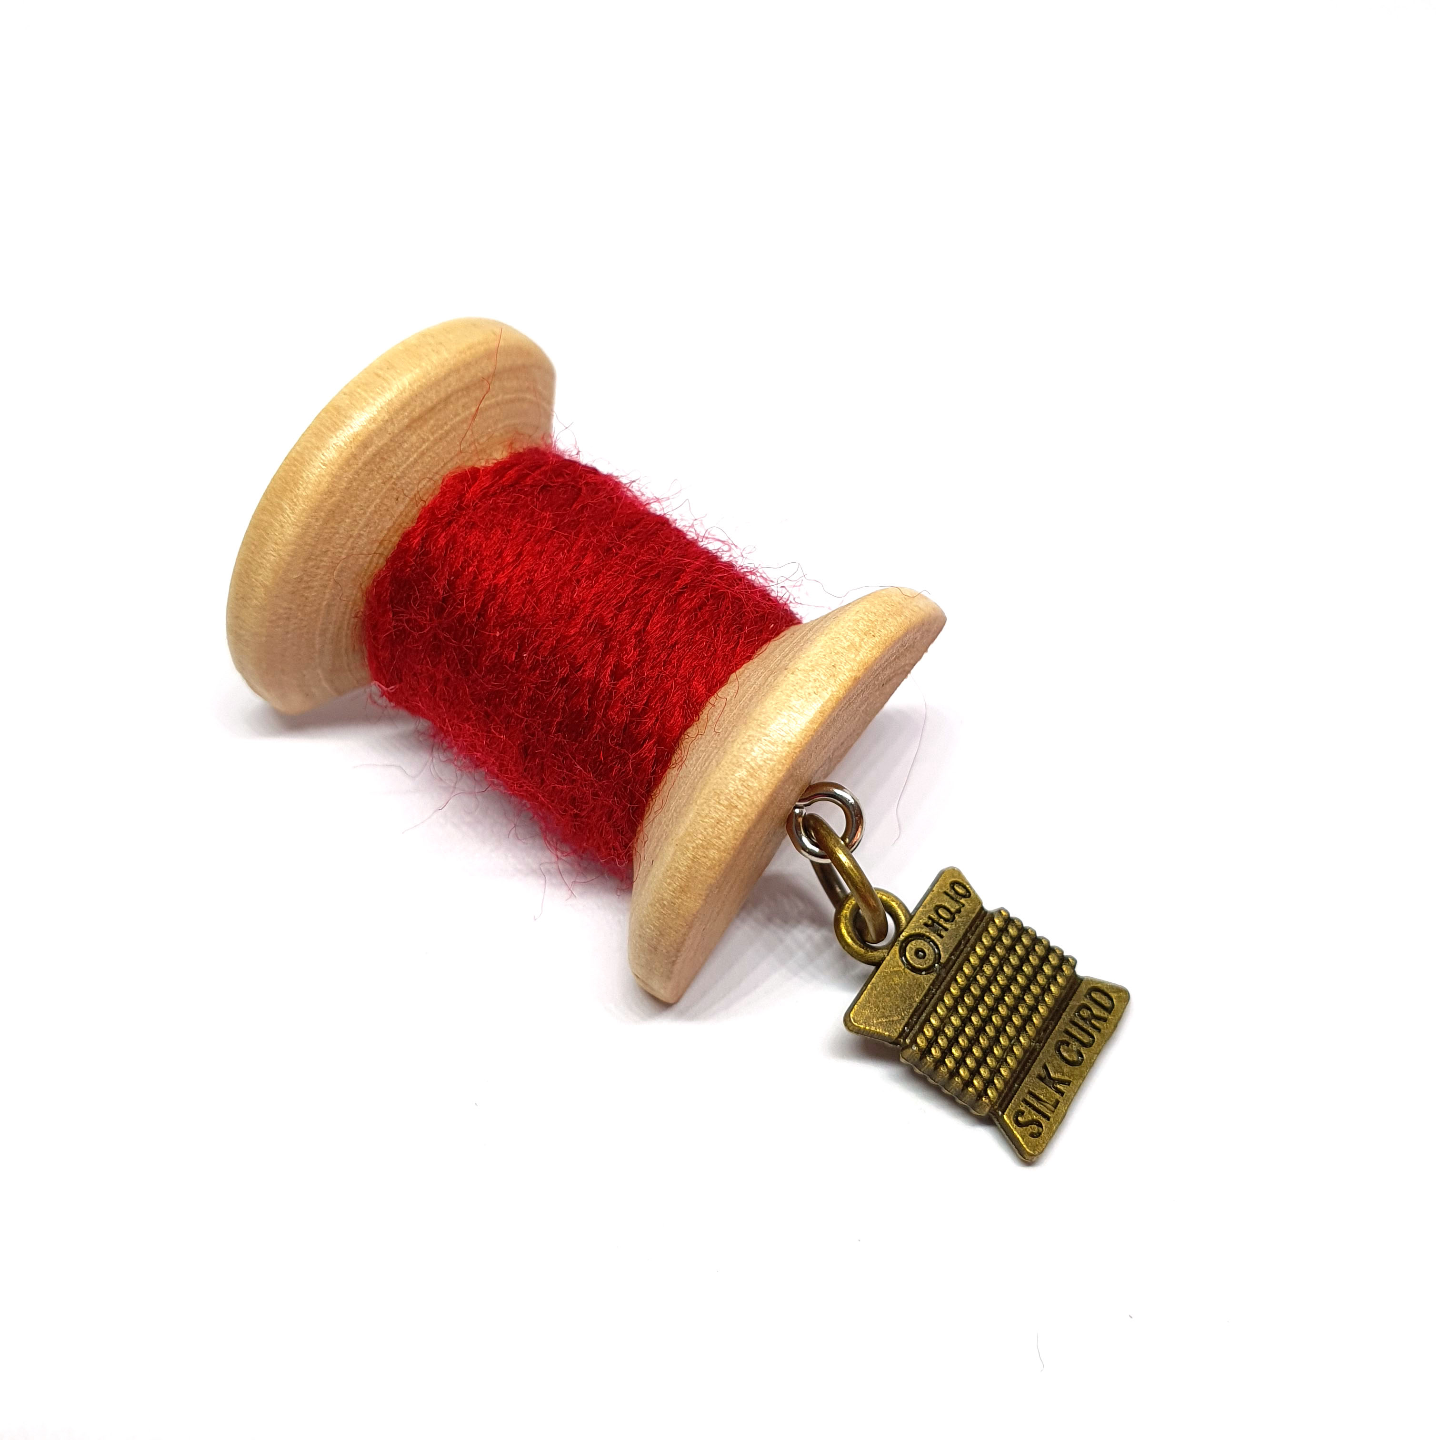 Handmade Brooch: Small Thread Spool (Plain Red 2) by Doe & Audrey